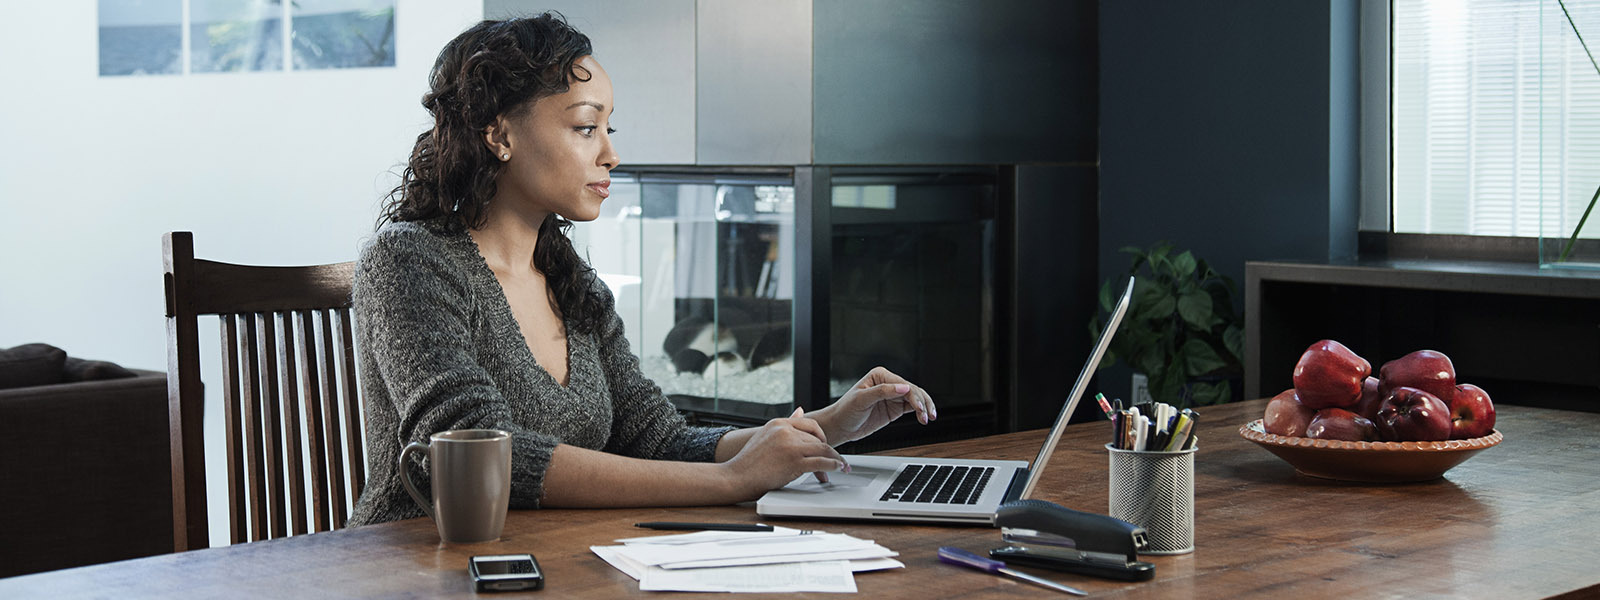 Woman using a laptop at a kitchen table